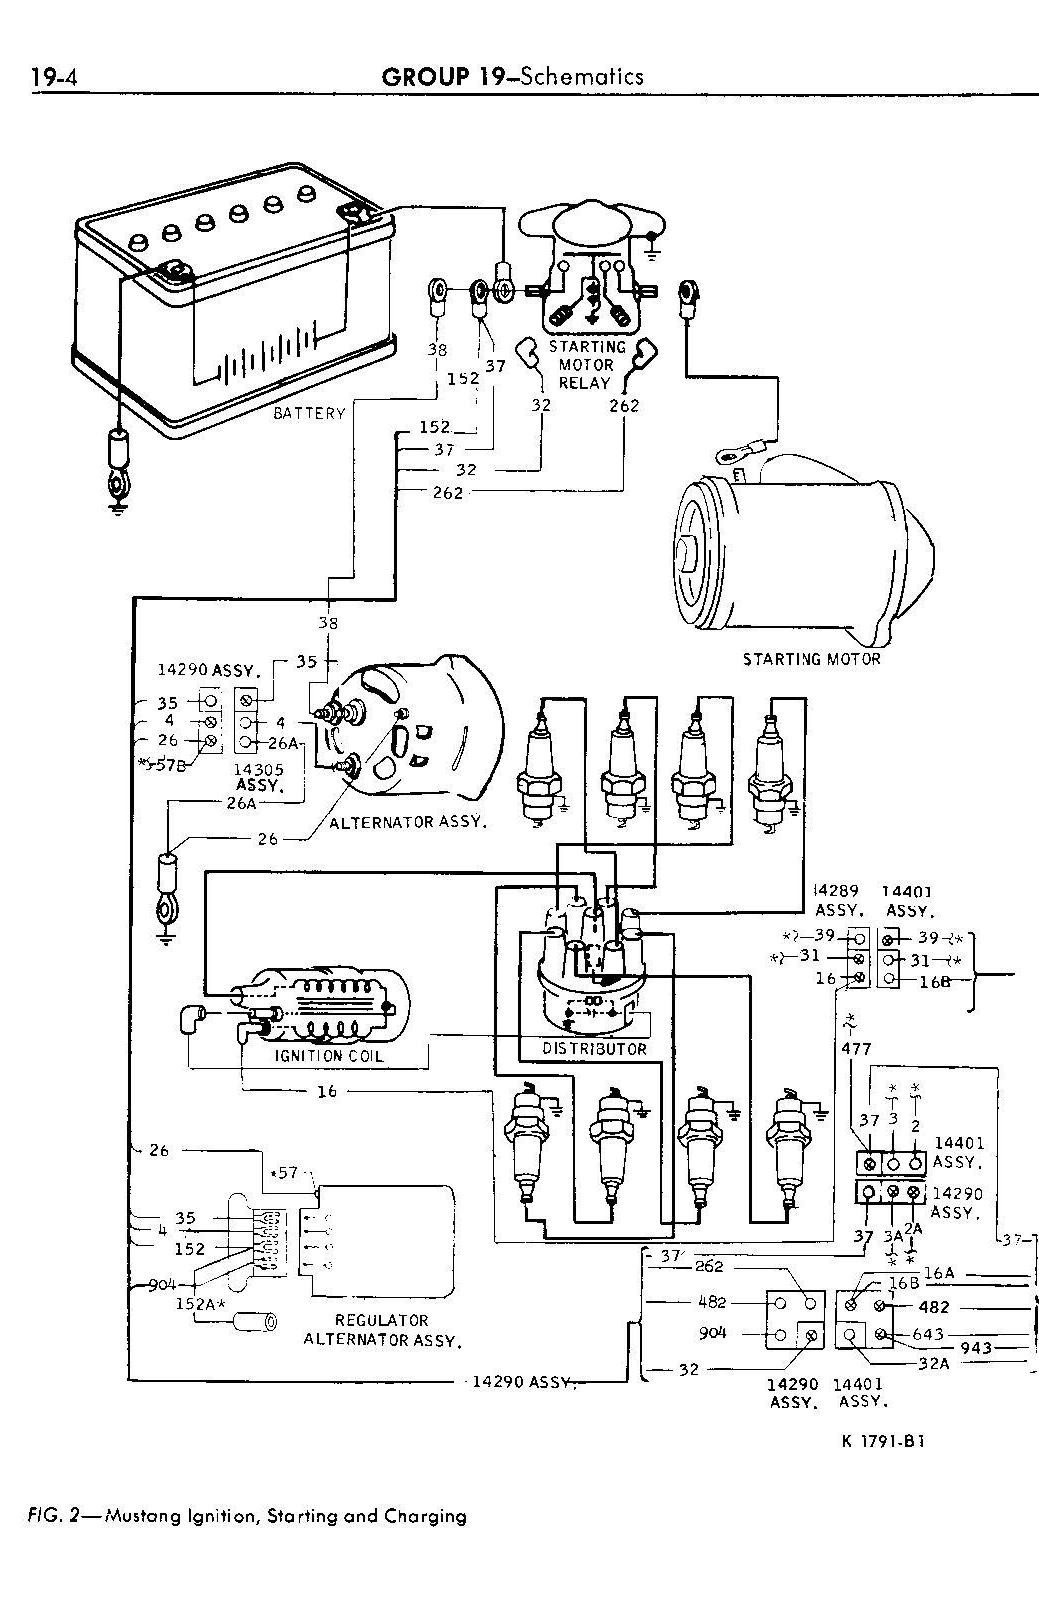 diagram] wiring diagram for neutral safety switch full version hd quality  safety switch - enginesurfer.mami-wata.fr  diagram database - mami wata